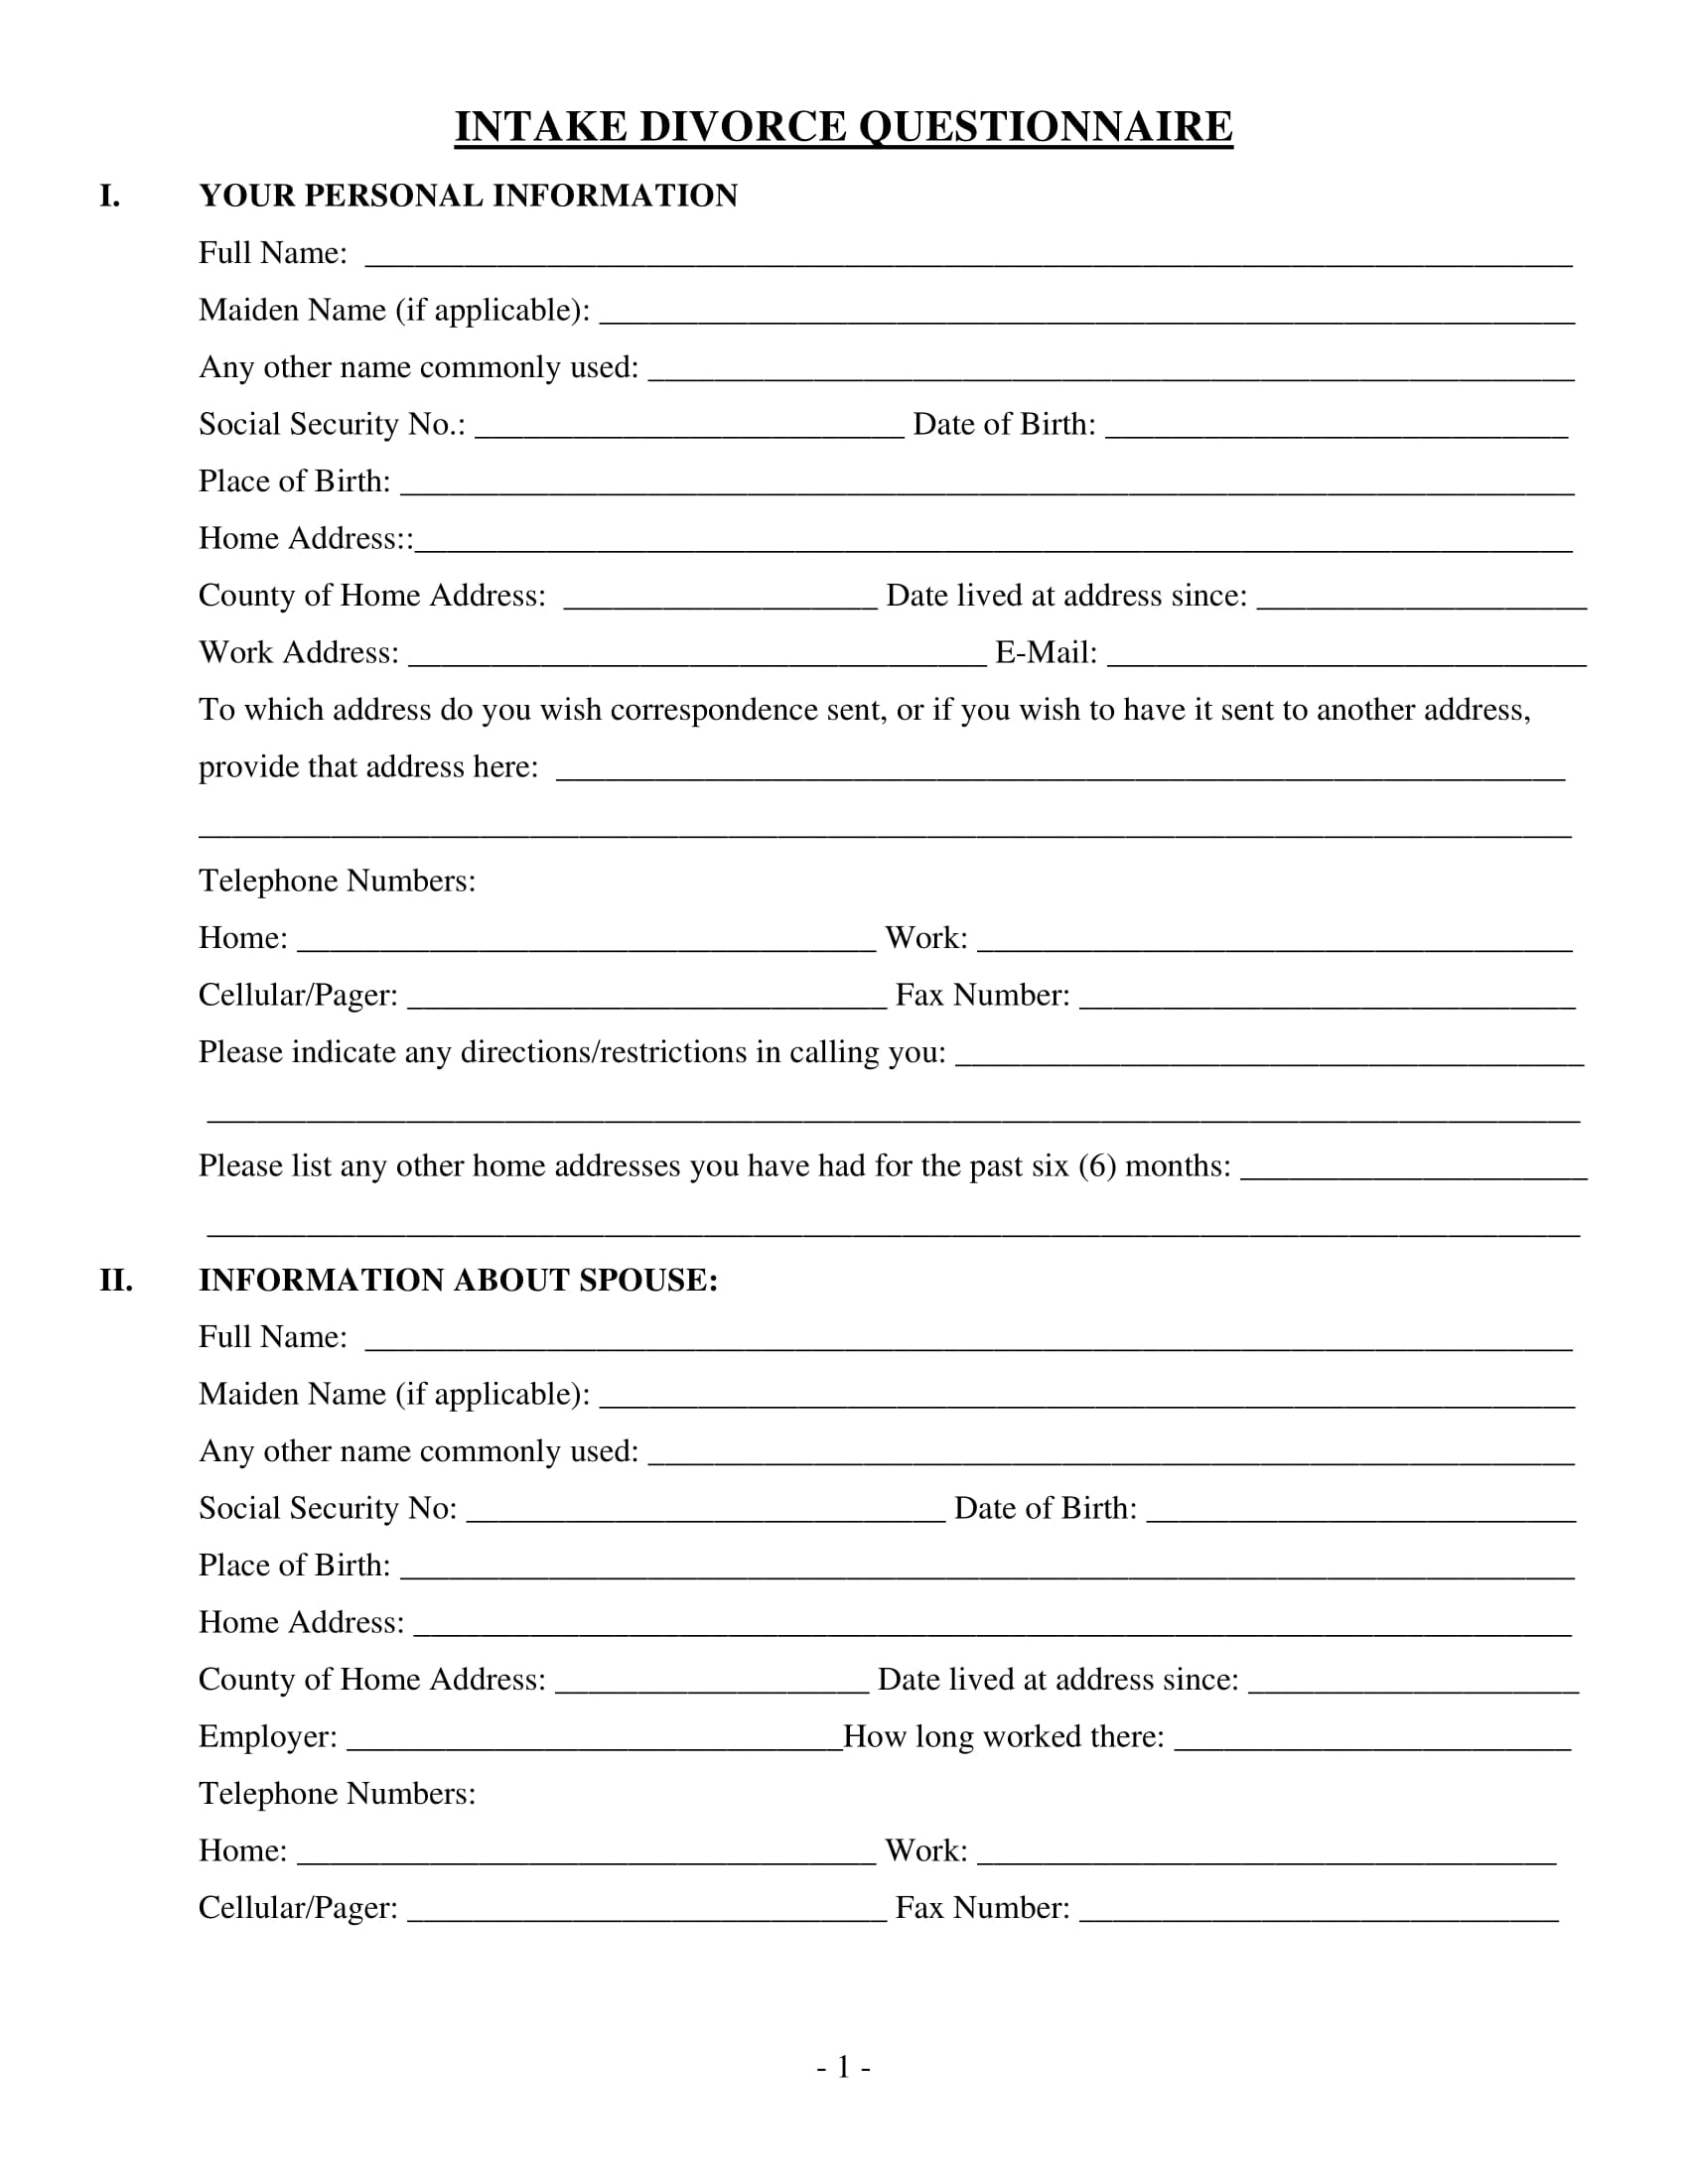 family law intake divorce questionnaire form 1